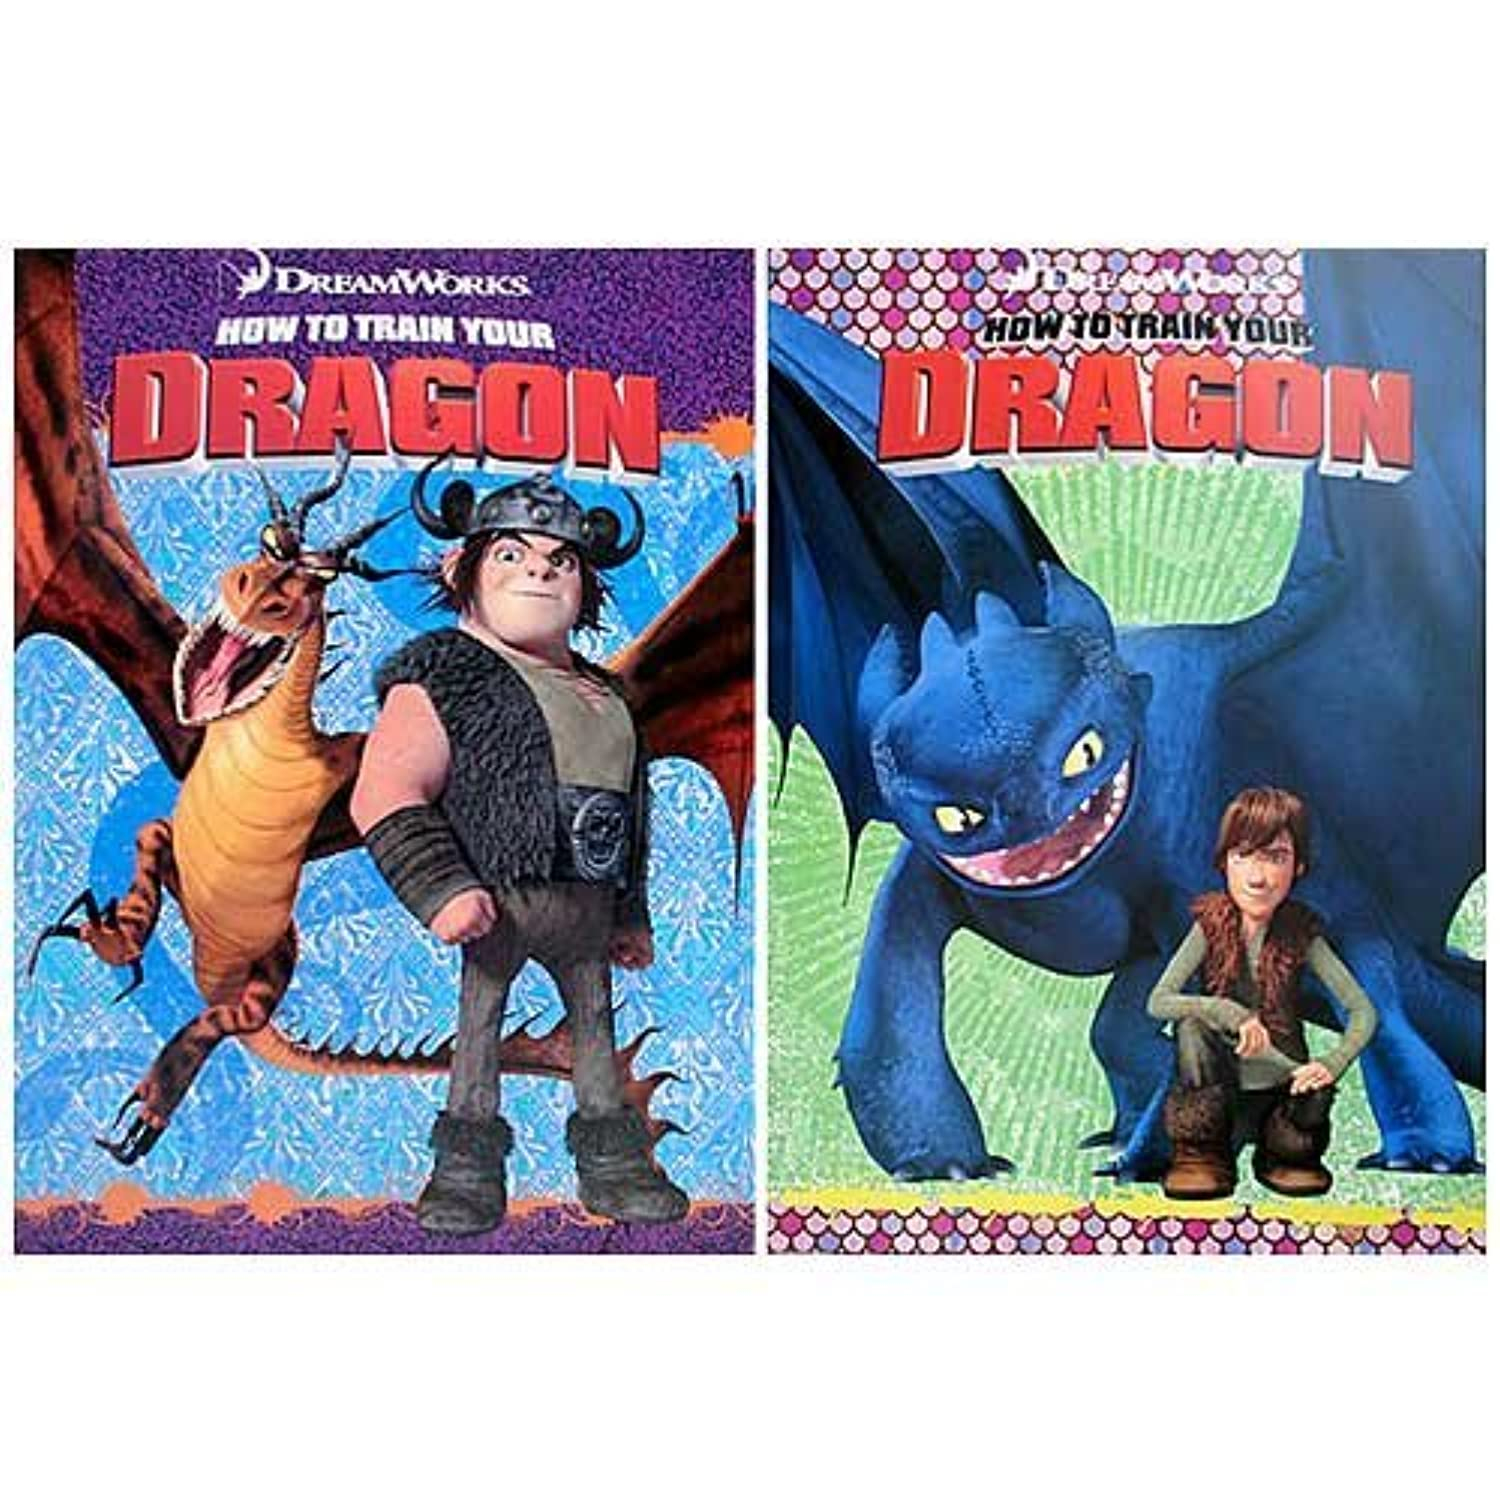 How to Train your Dragon Coloring and Activity Books (2 Books) by Dreamworks Animation by Dreamworks Animation